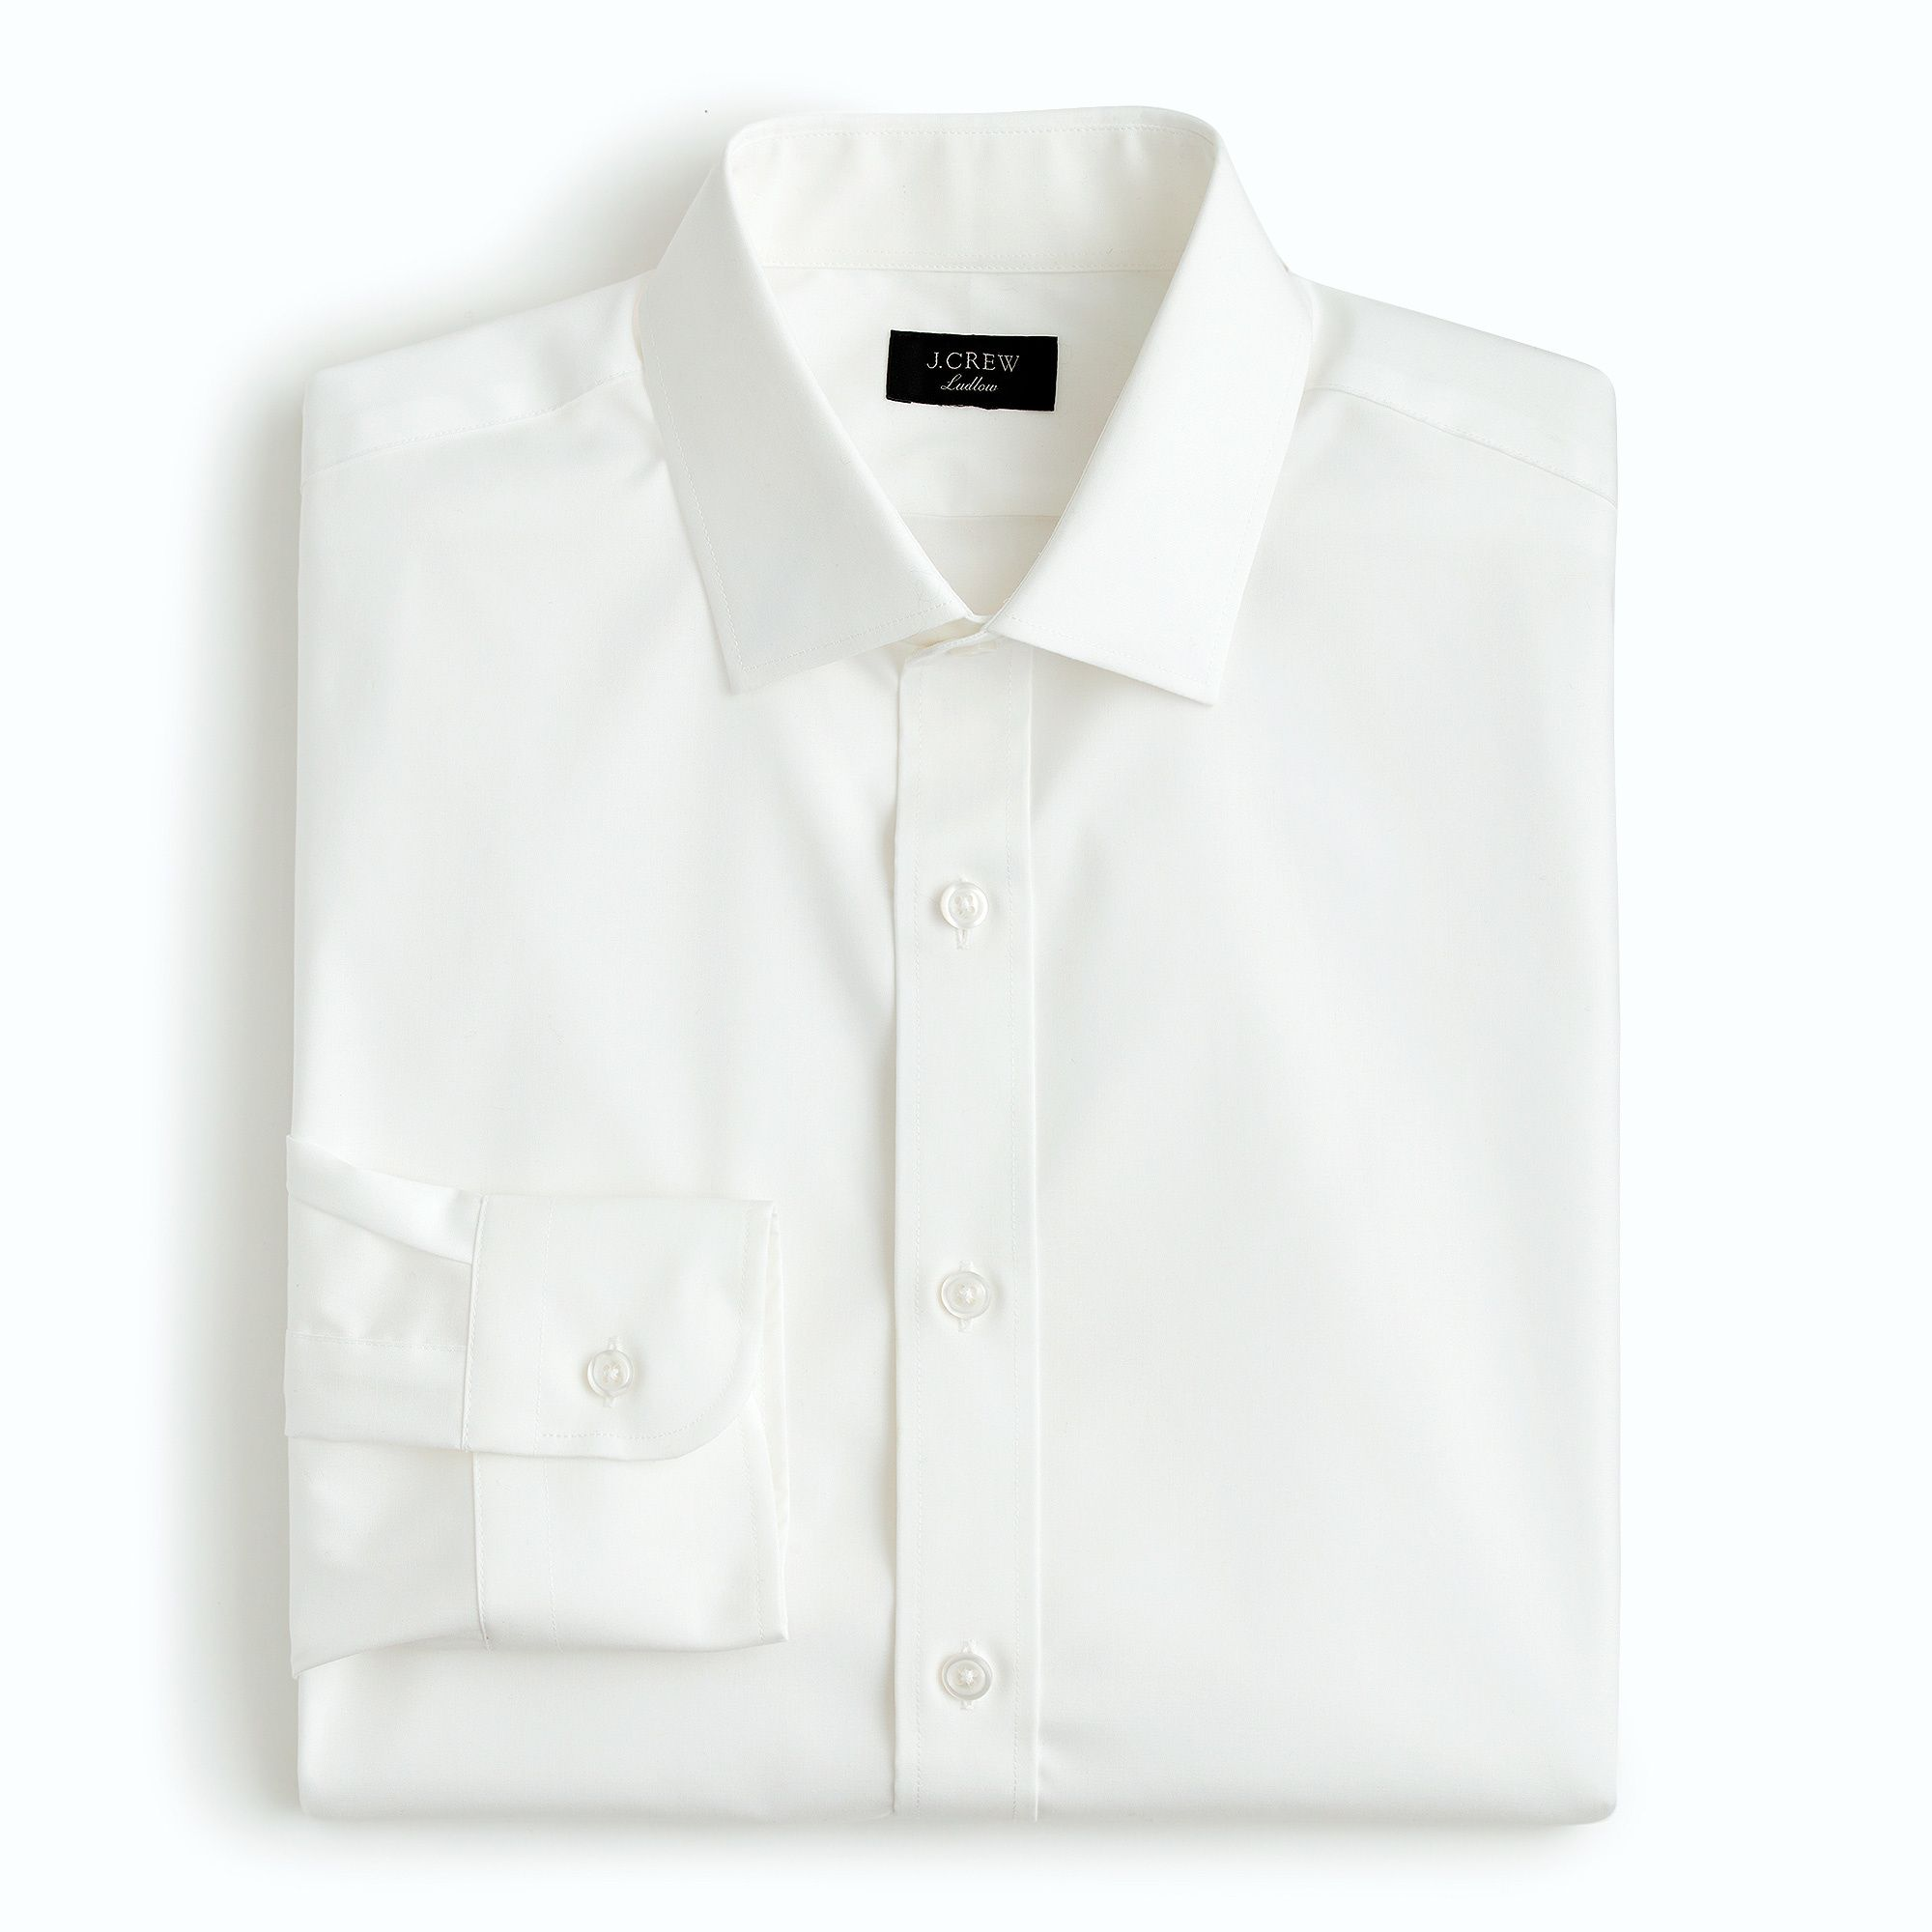 Folded white dress shirt